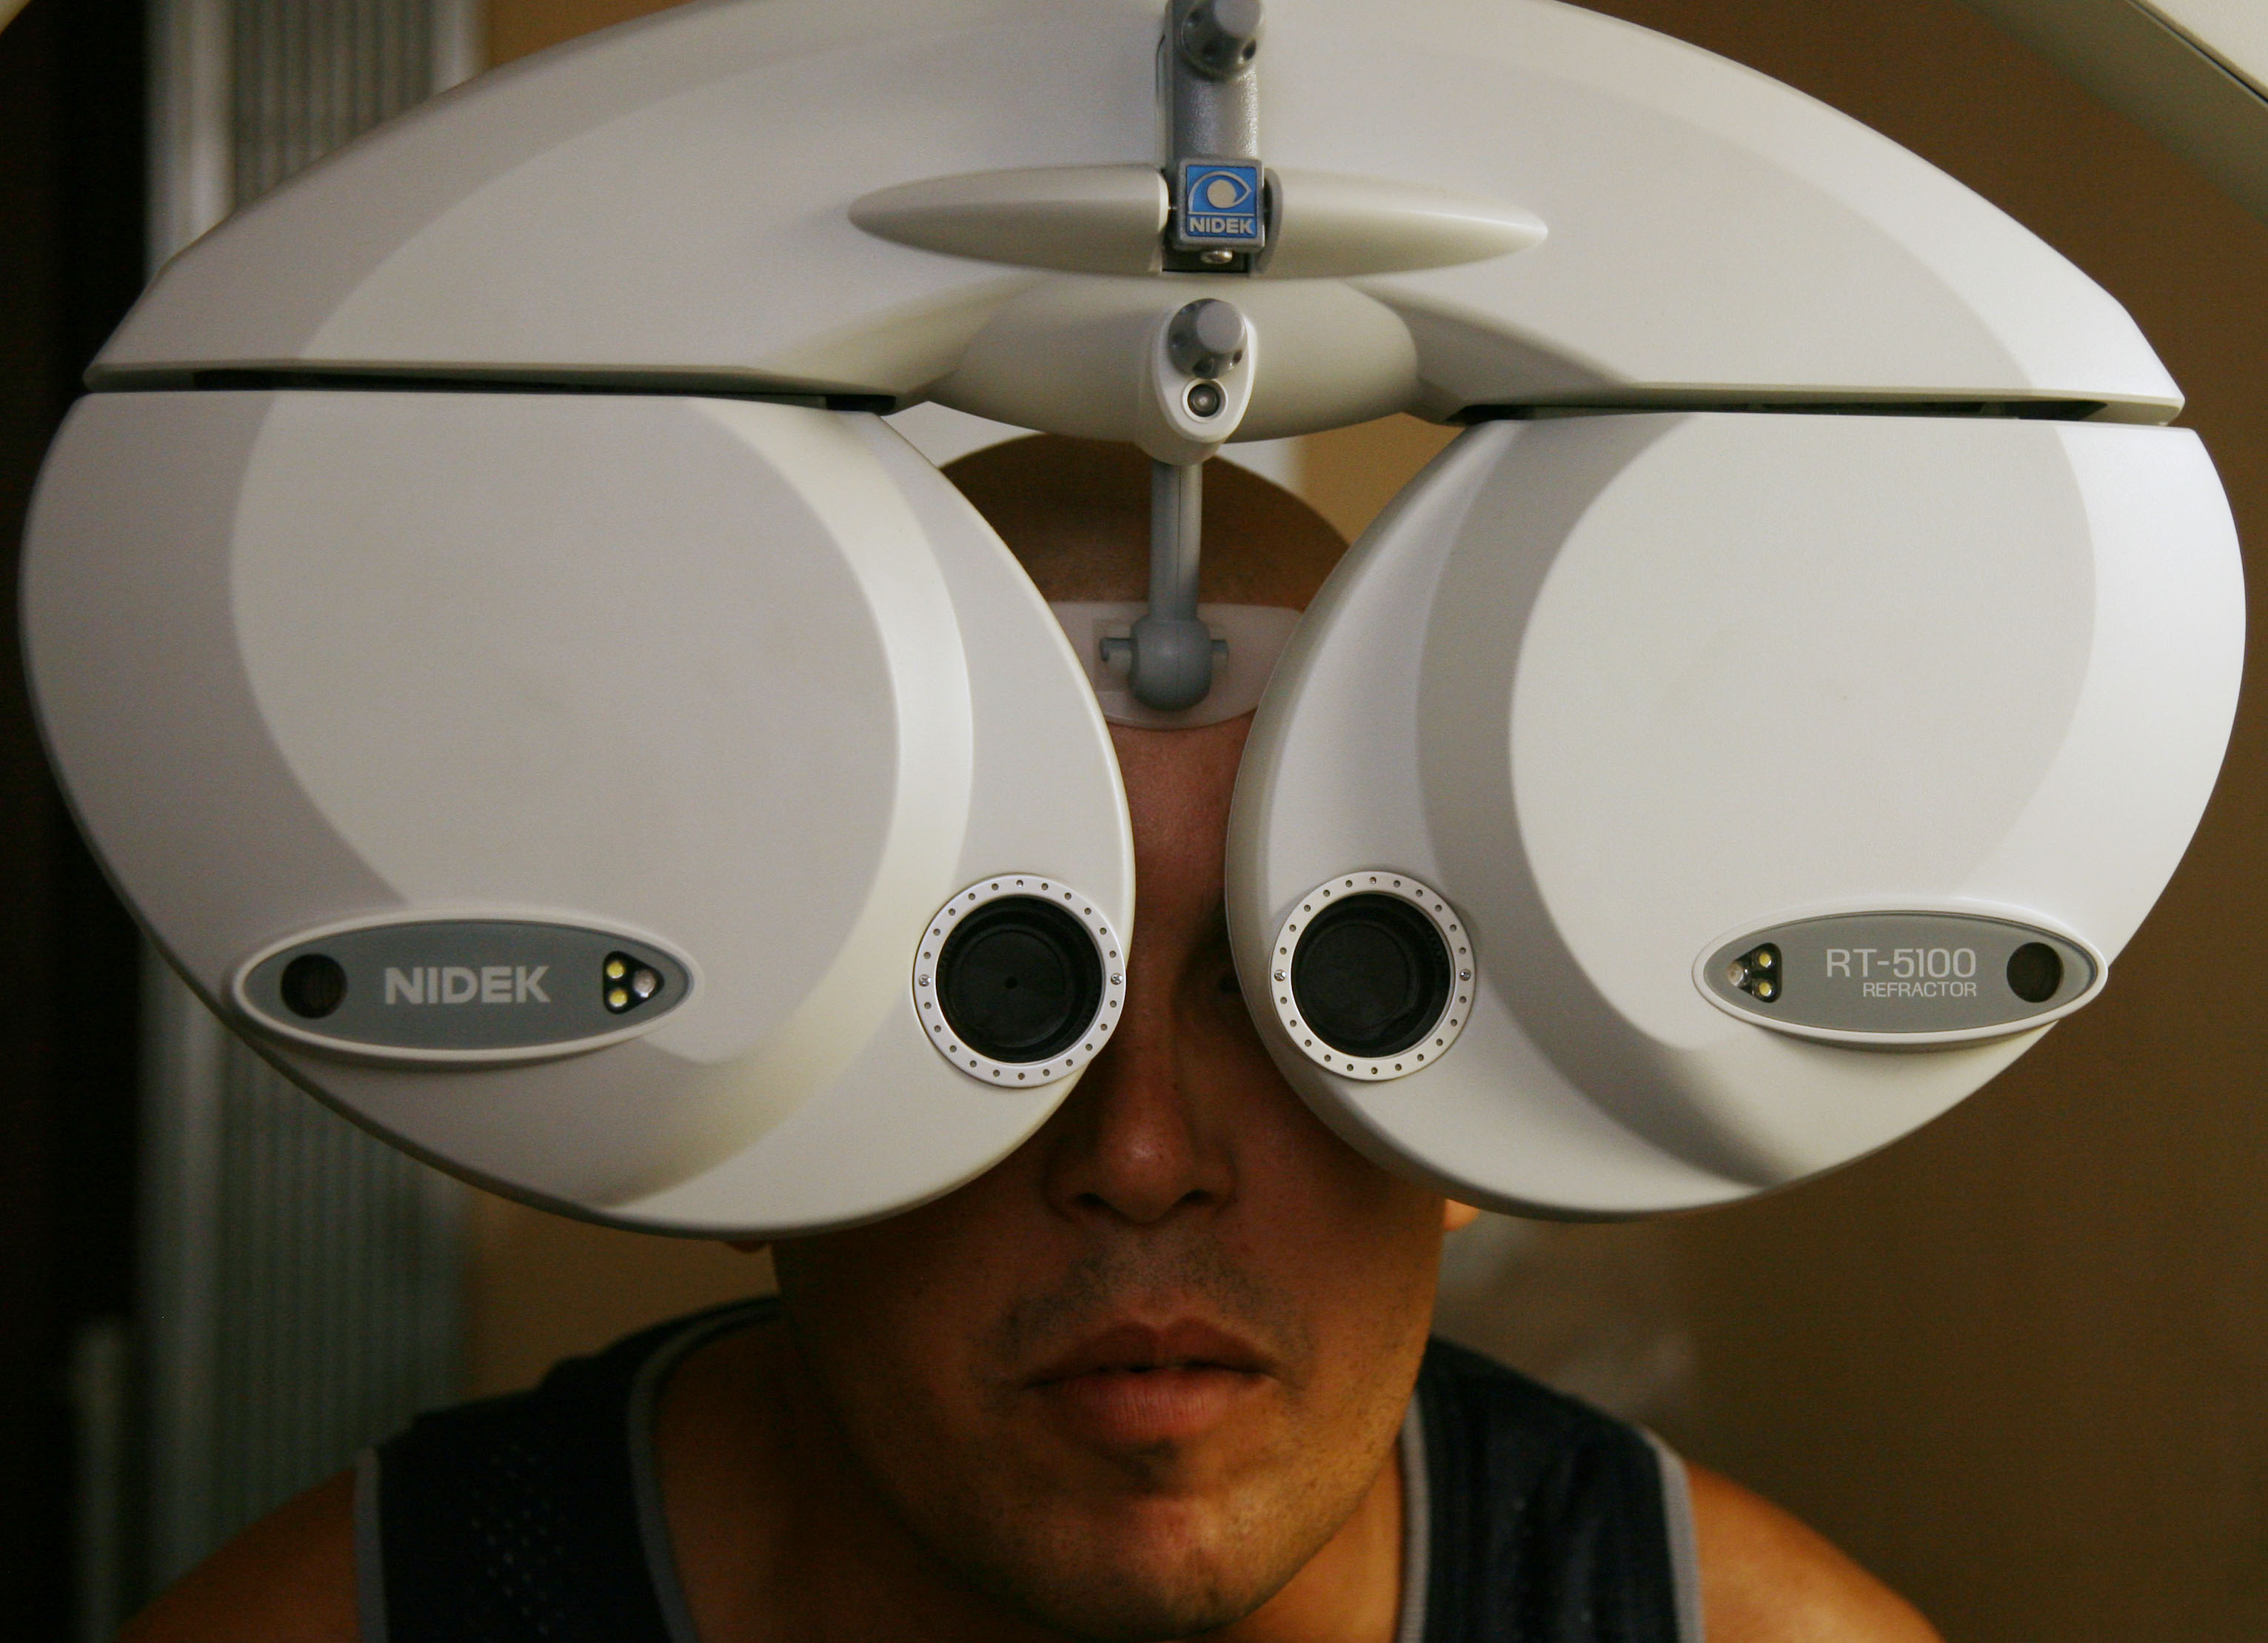 A man is examined at the Pando Ferrer Eyes Hospital, a model hospital in its specialty, in Havana, Cuba, Tuesday, September 12, 2006. Photographer: Diego Giudice/Bloomberg News.